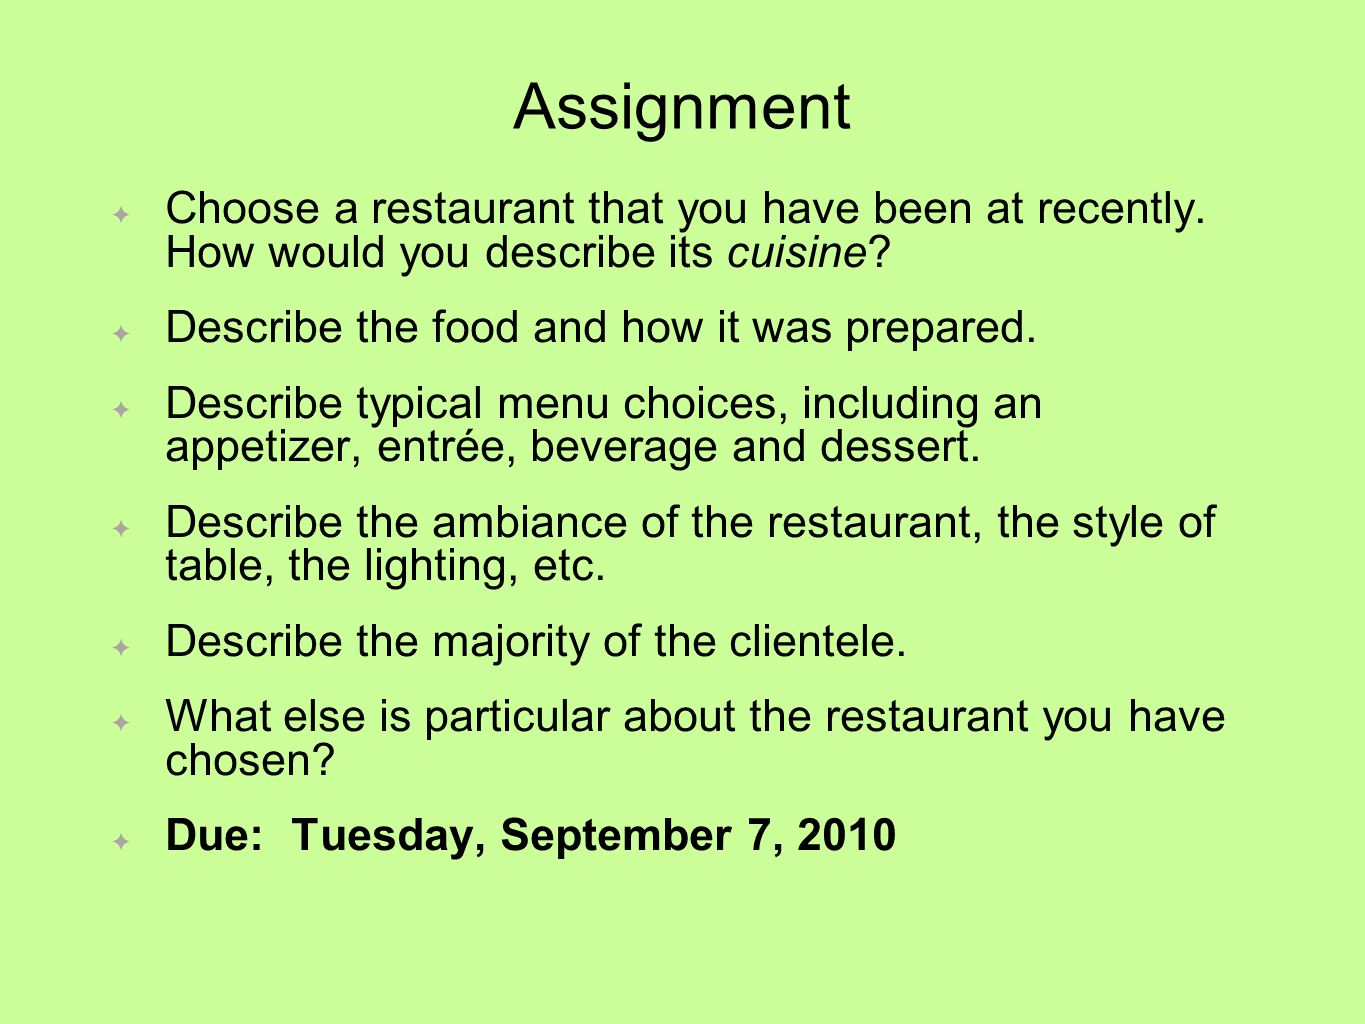 Assignment Choose a restaurant that you have been at recently. How would you describe its cuisine